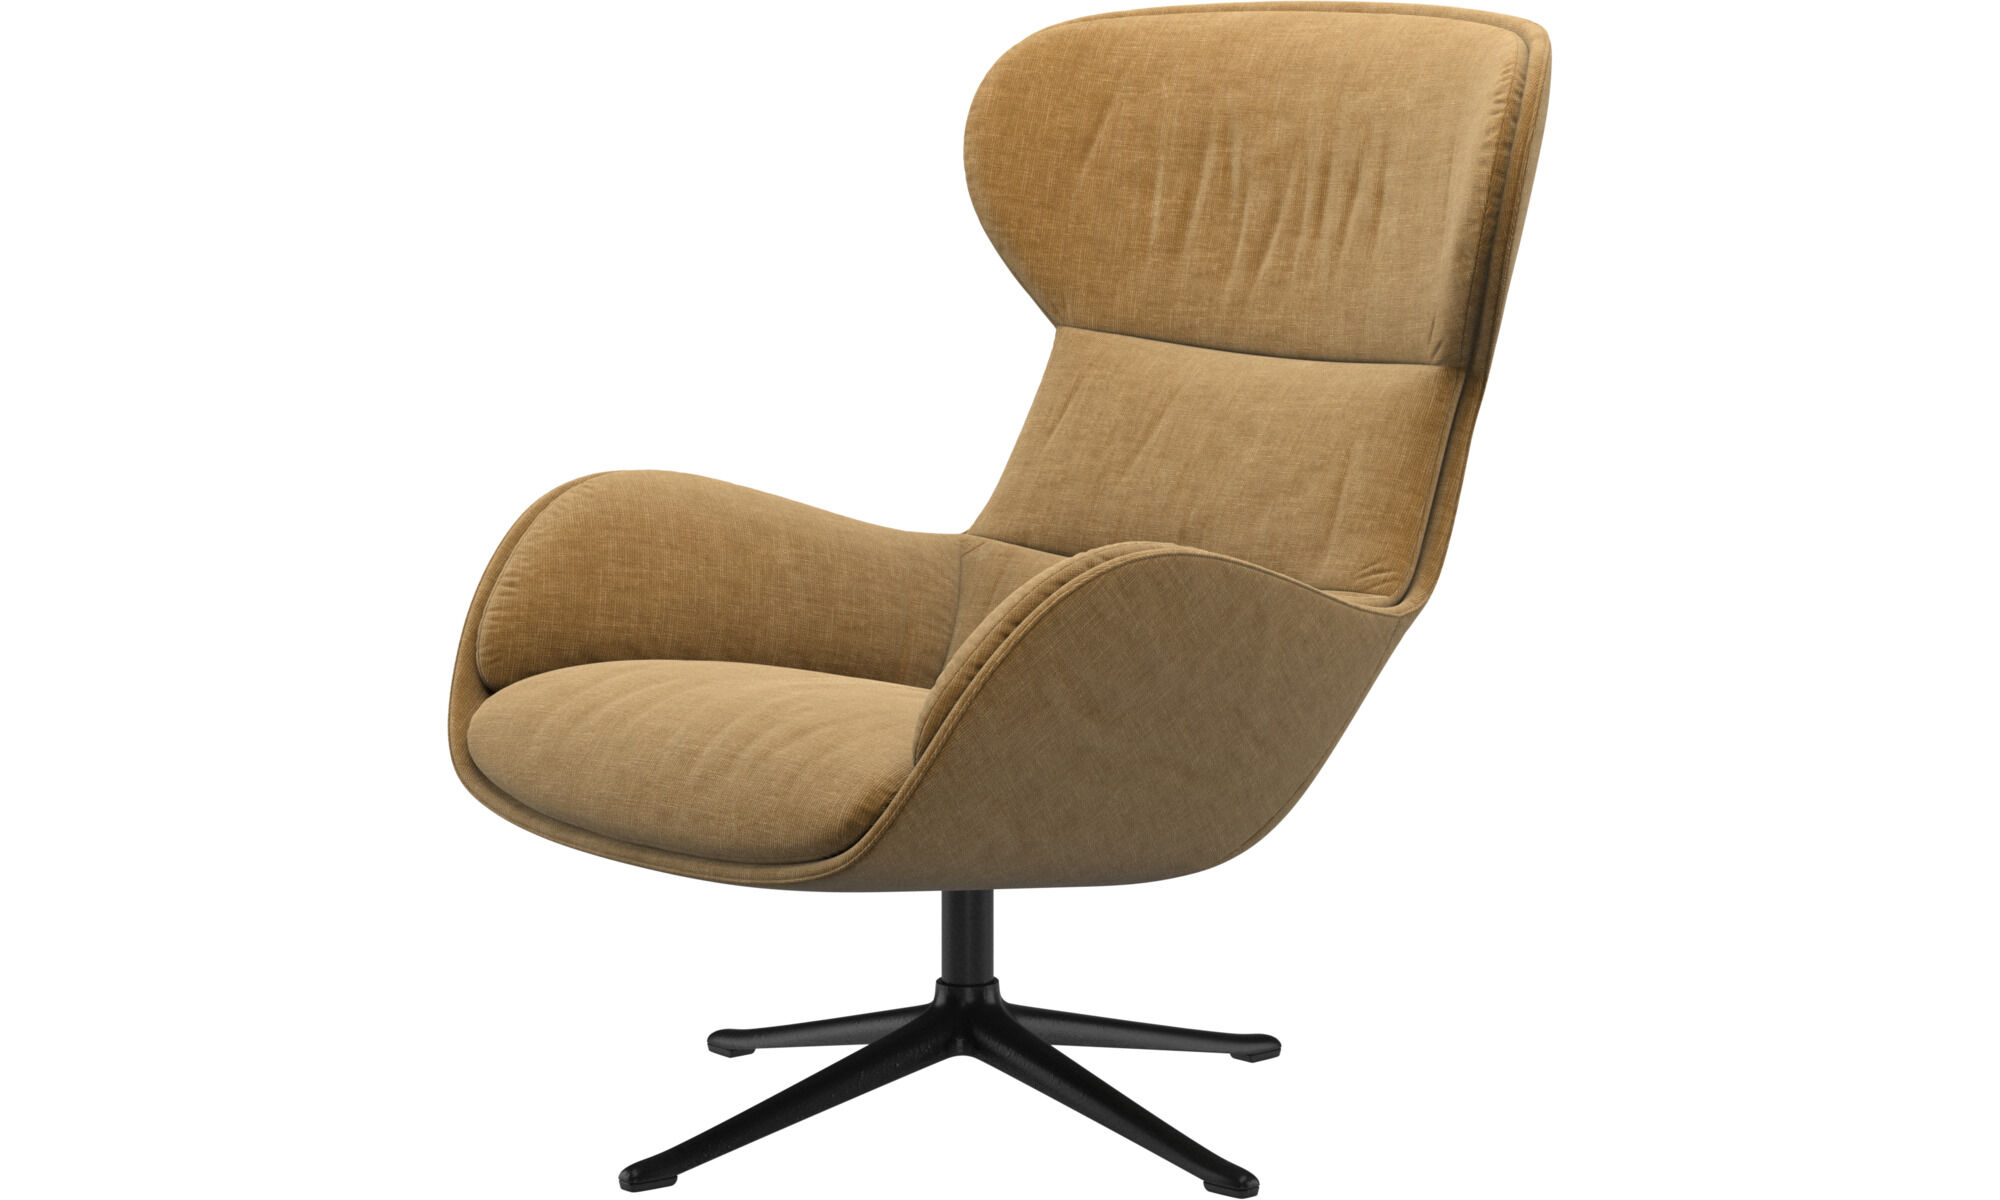 Charmant Armchairs   Reno Living Chair   Beige   Fabric ...